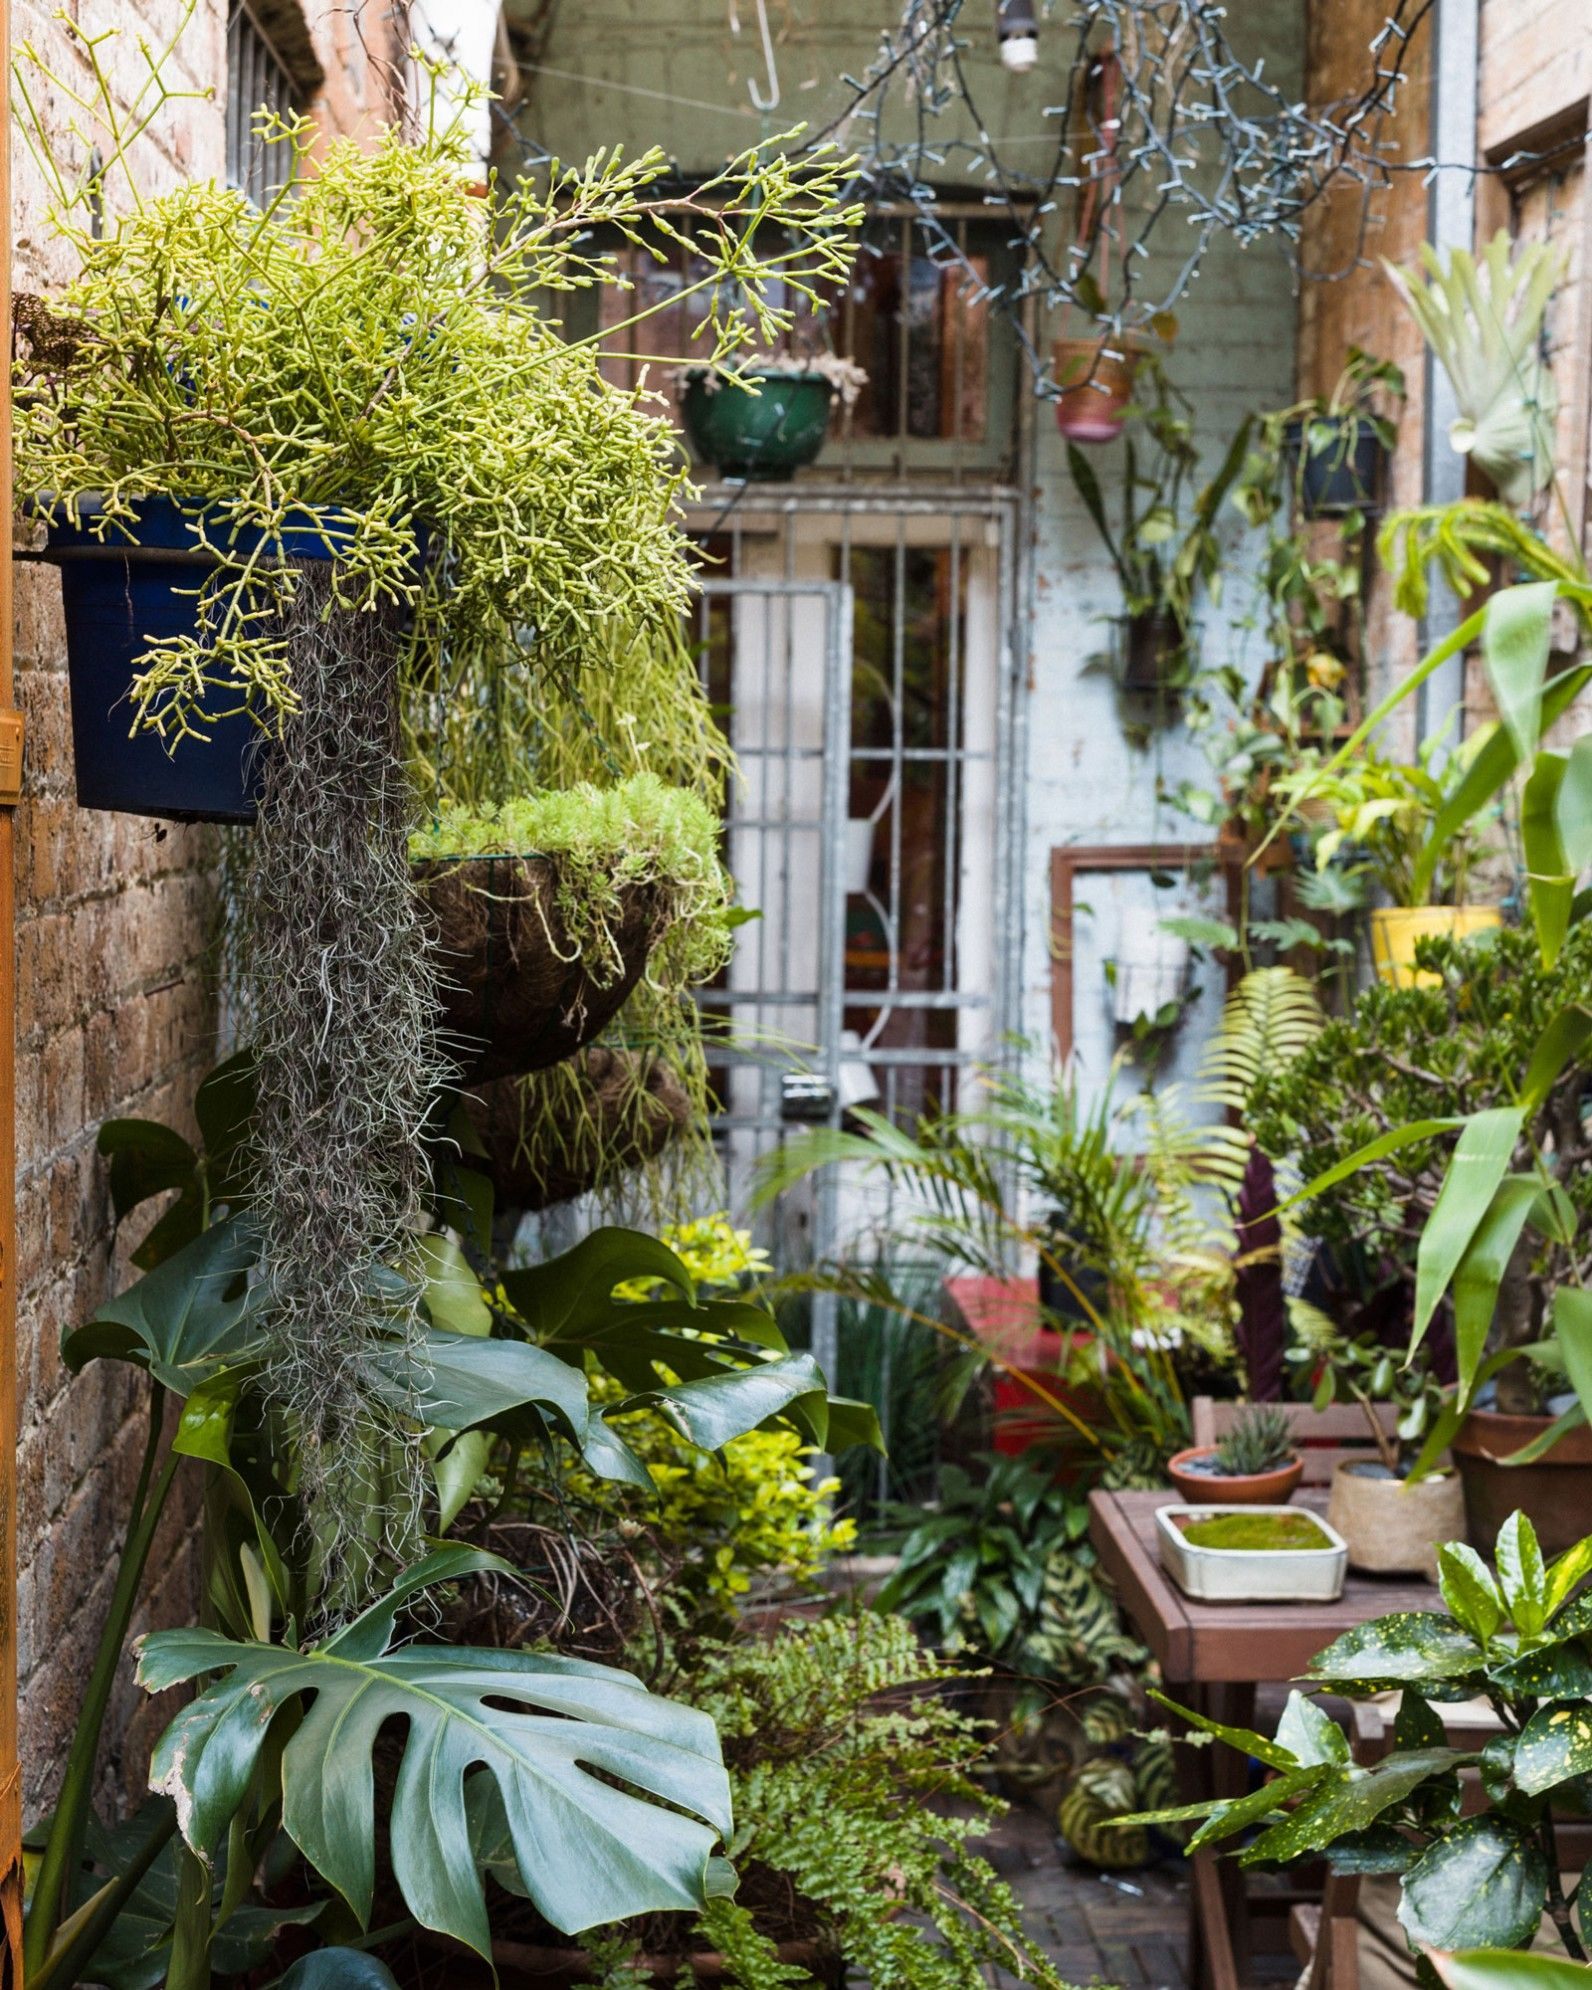 55 Small Urban Garden Design Ideas And Pictures: Plant / Life: David Whitworth (With Images)